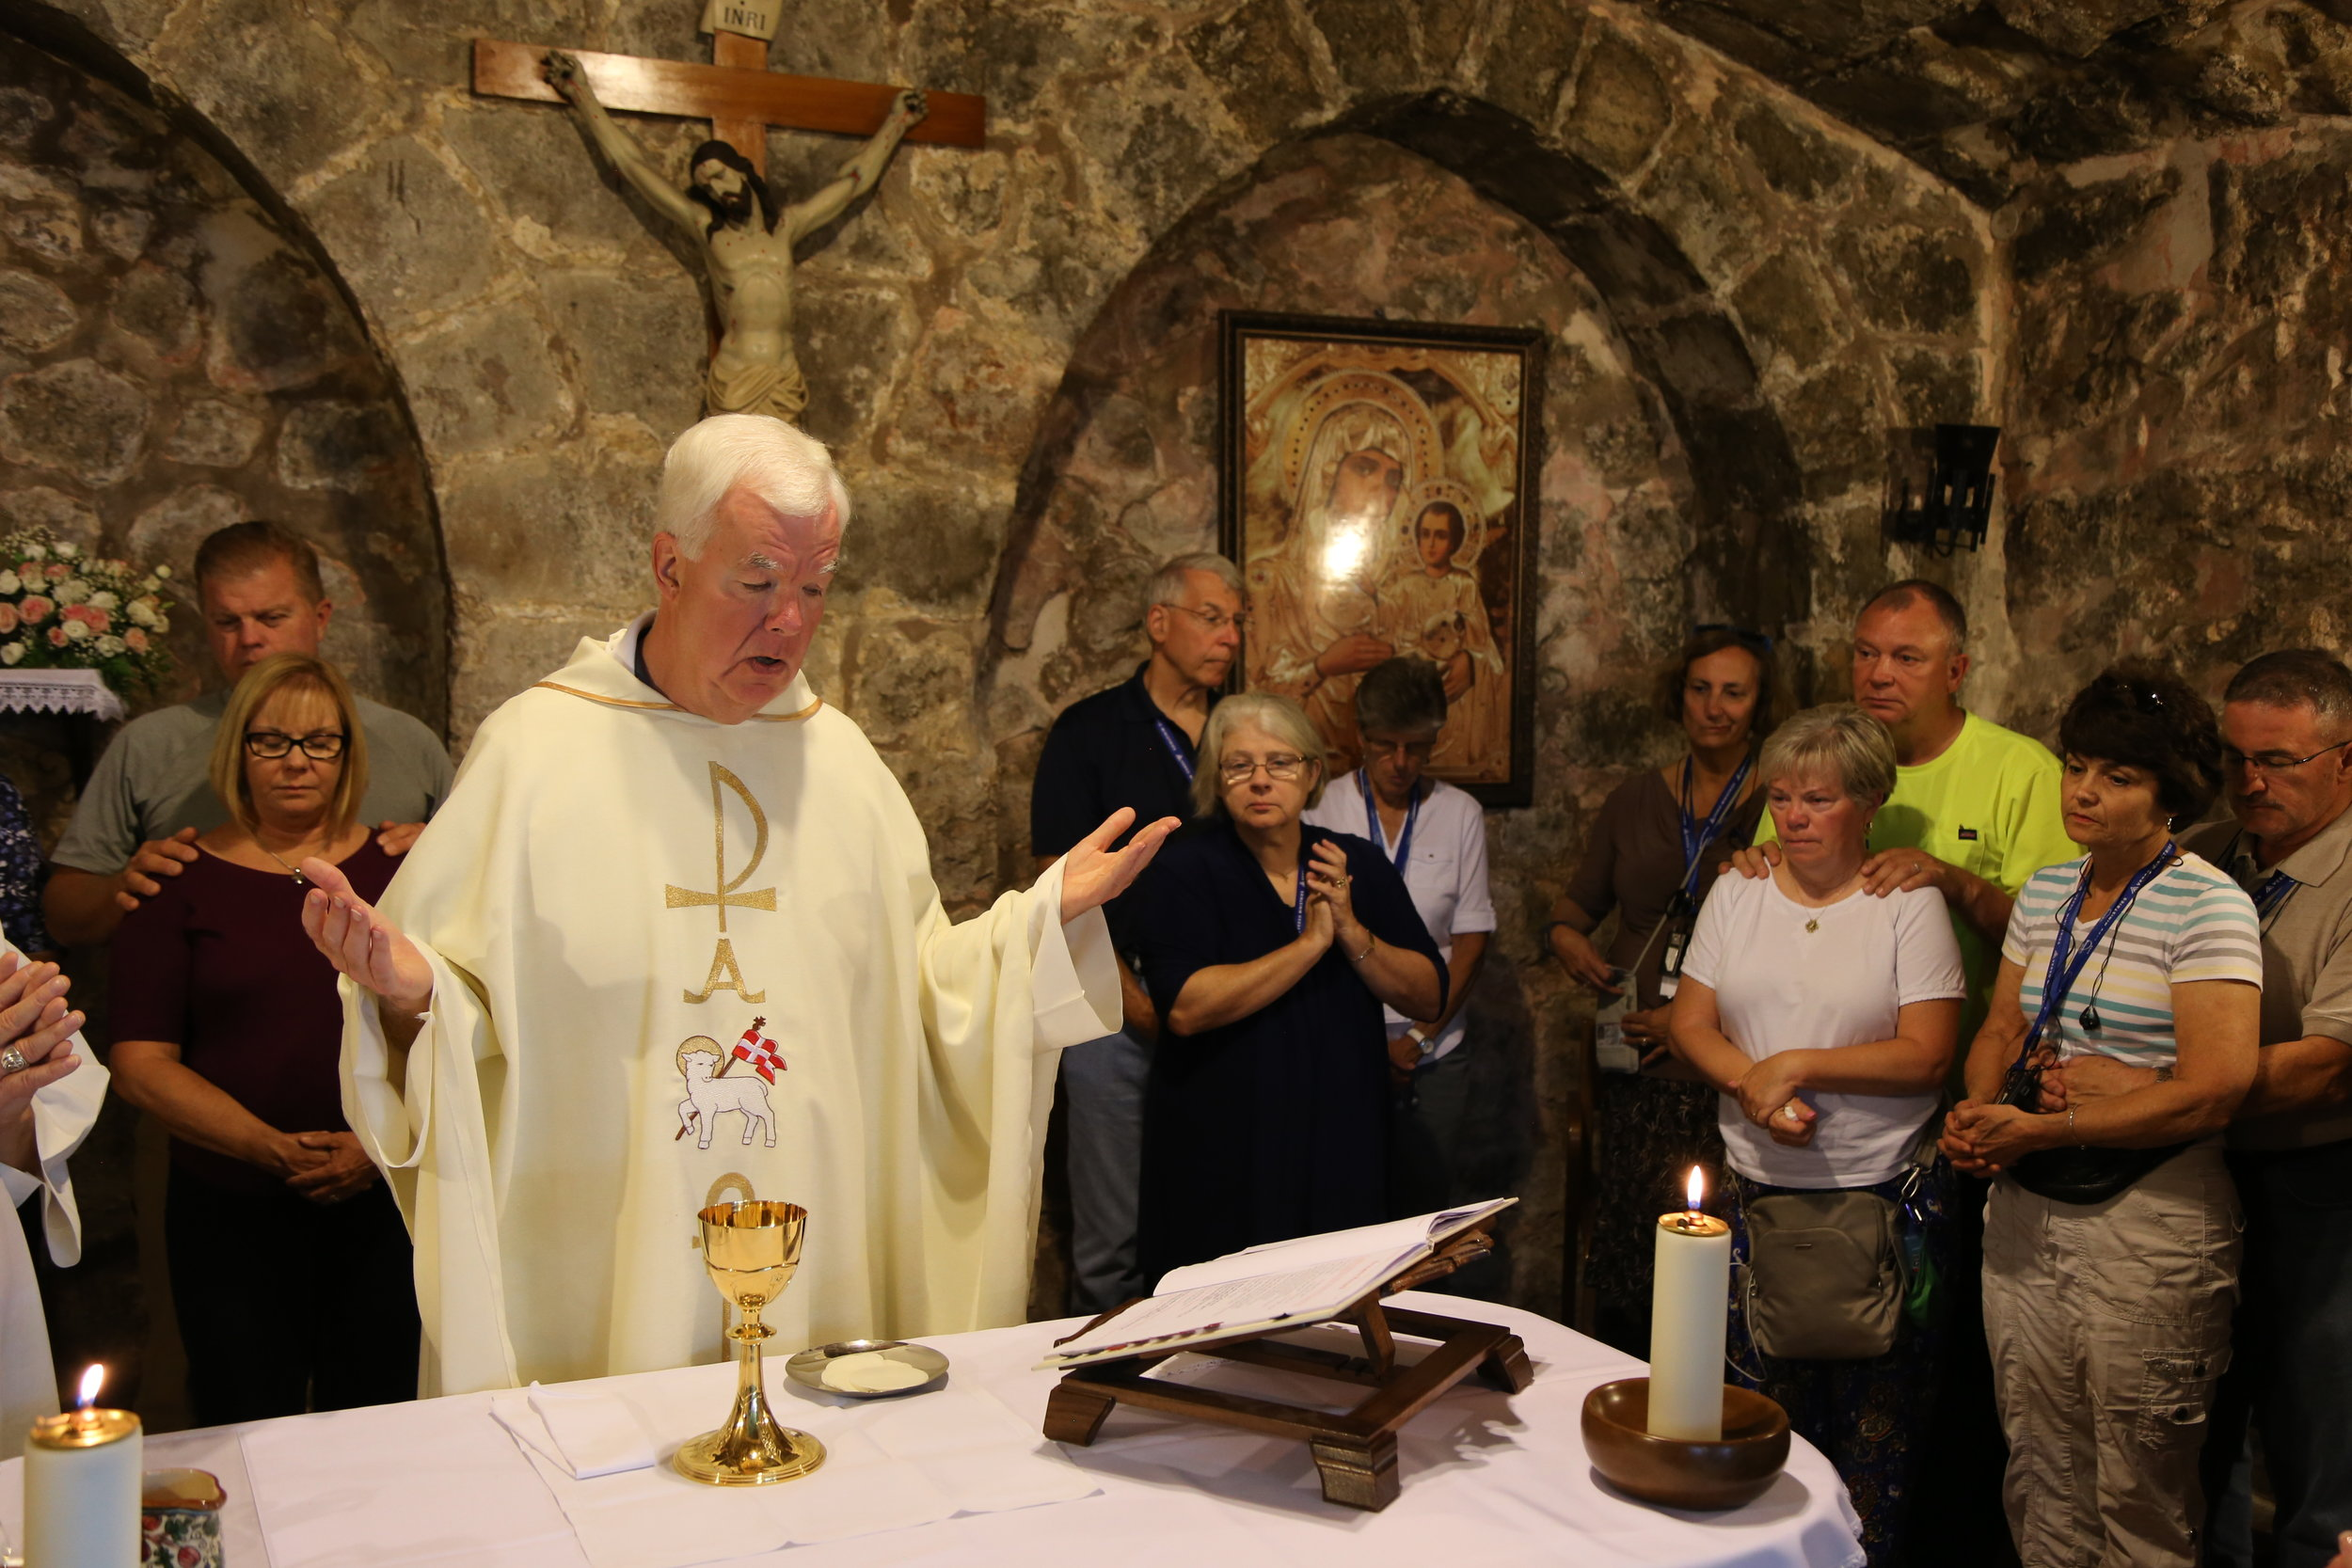 Celebrating Mass in the Church of the Holy Sepulchre.